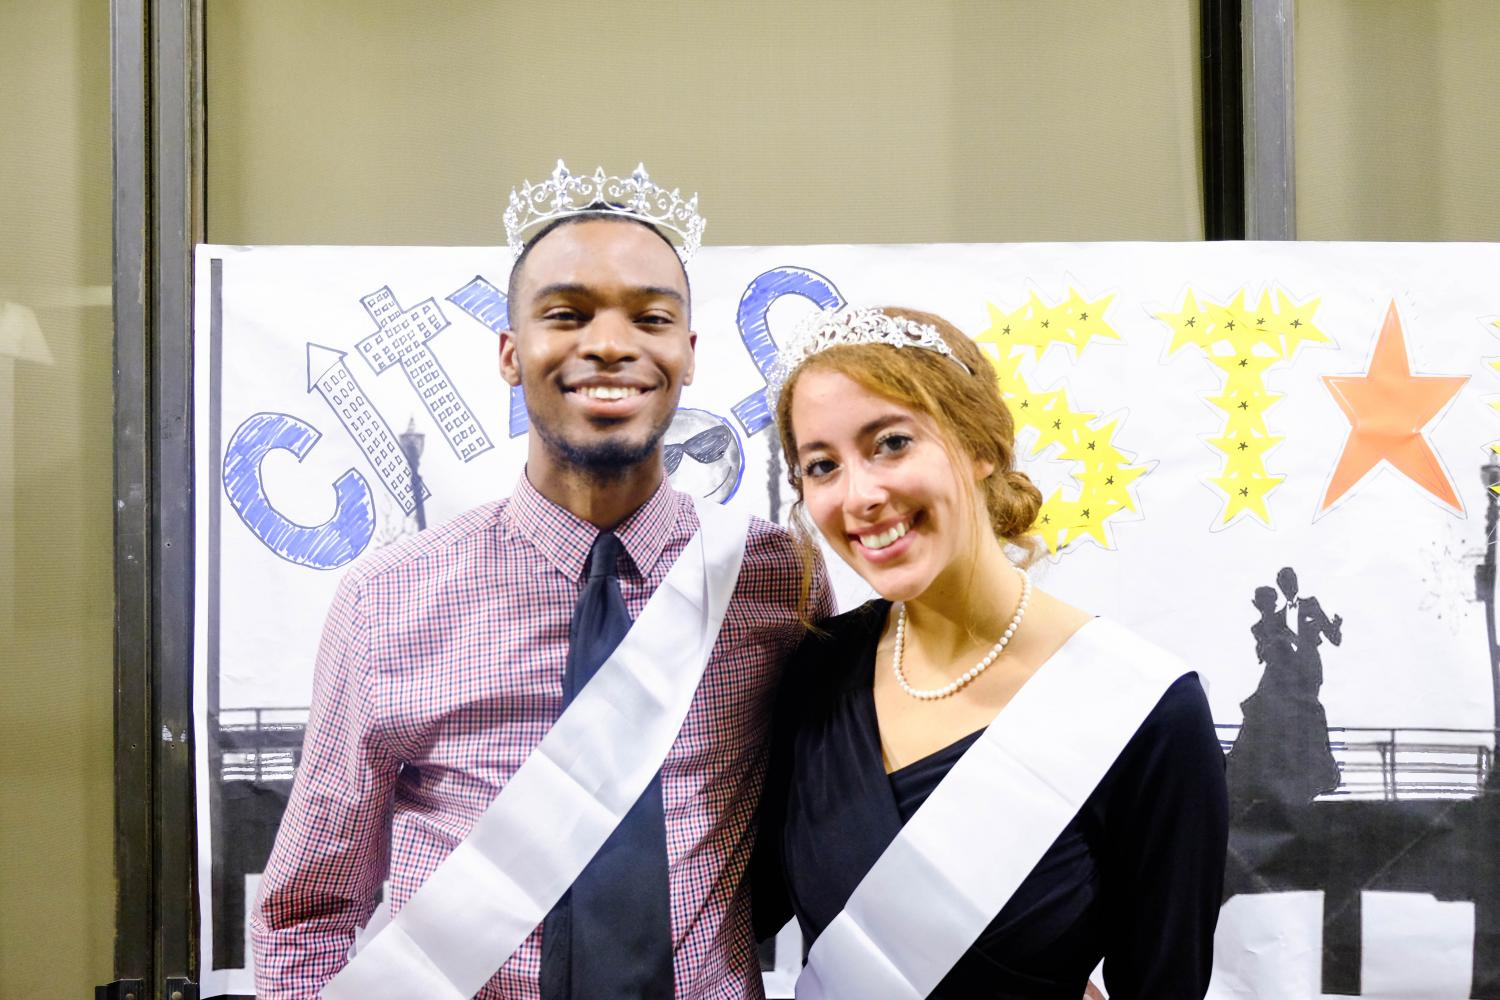 Representative of Society of Music, Kayla Atkinson and Black Student Union club president and ASO Director of Academic Affairs Bryant Odega, who were respectively crowned king and queen of homecoming. Photo credit: Emma Dimaggio